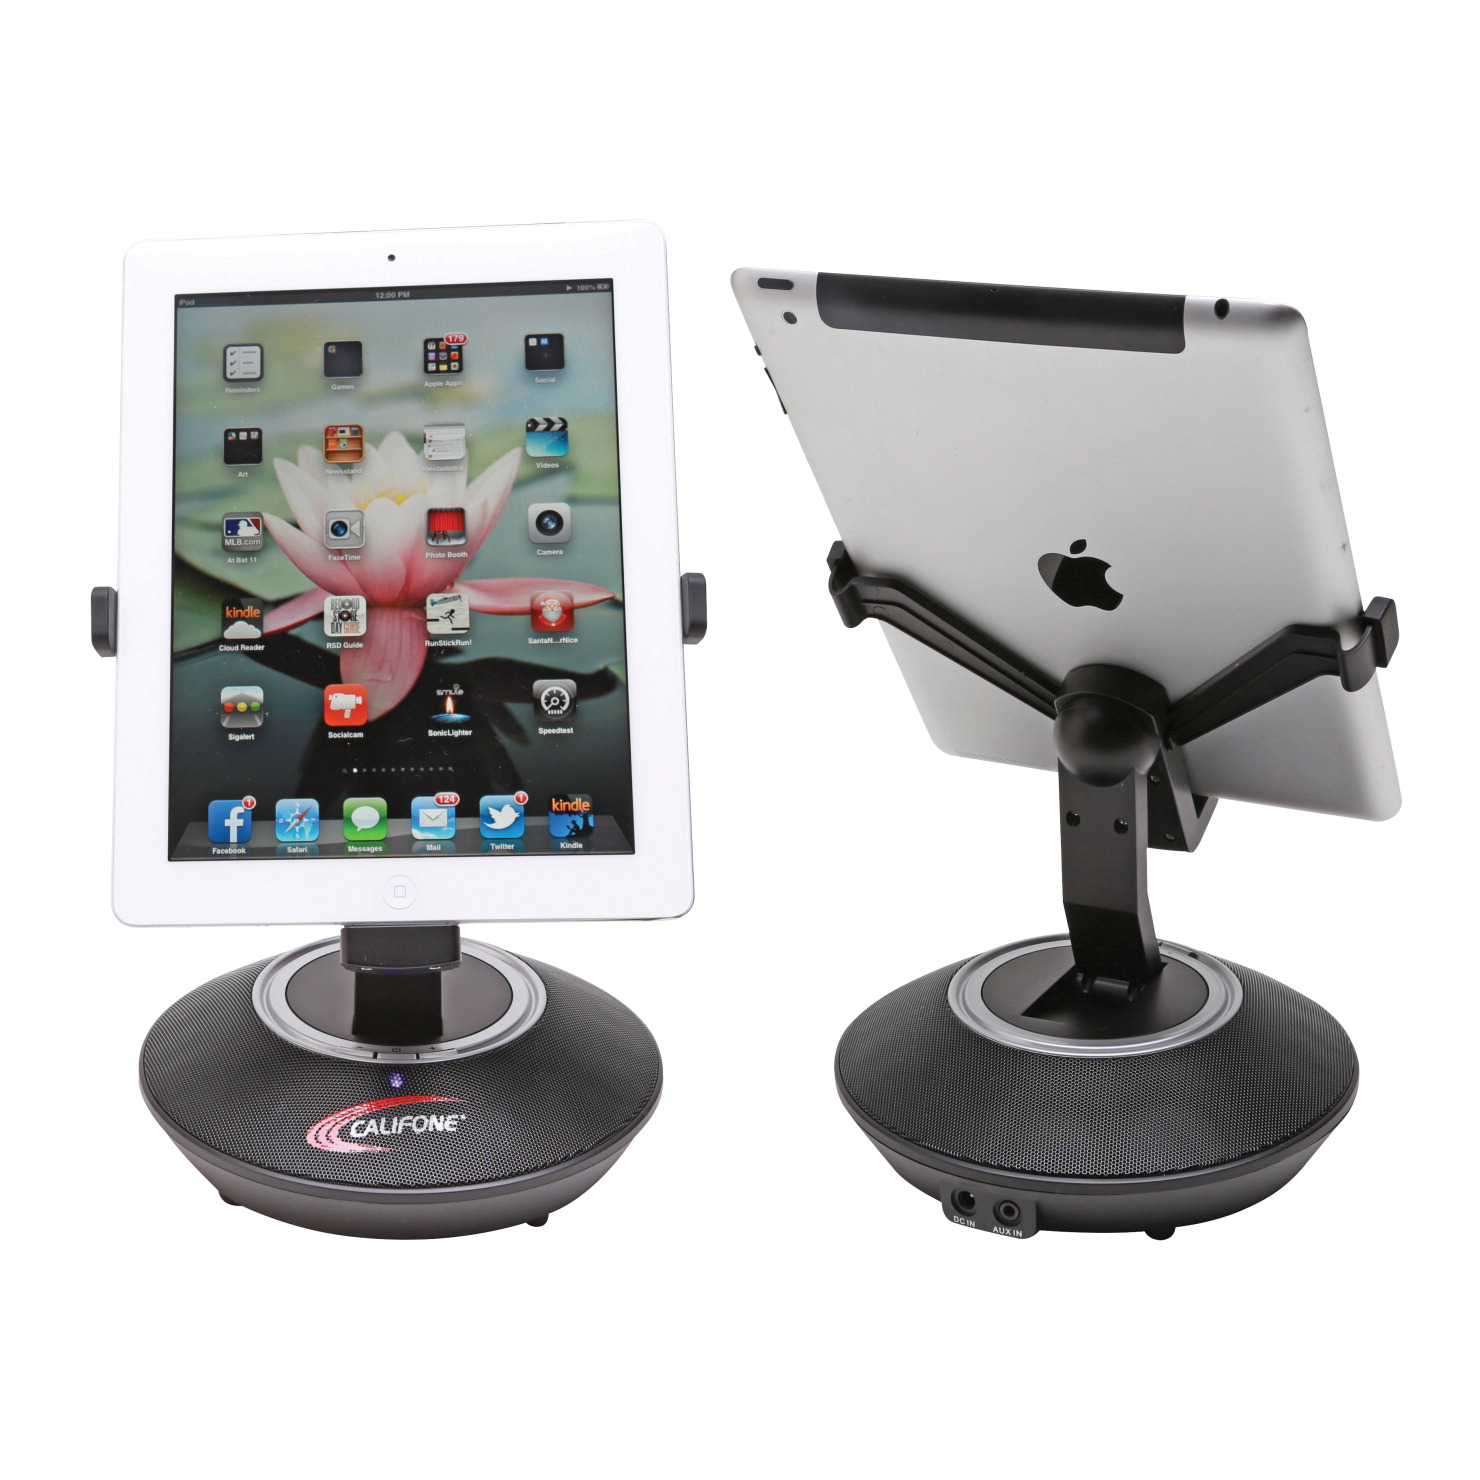 Califone PA-MBiOS iPad and iPhone Docking Station with Built-in Speakers